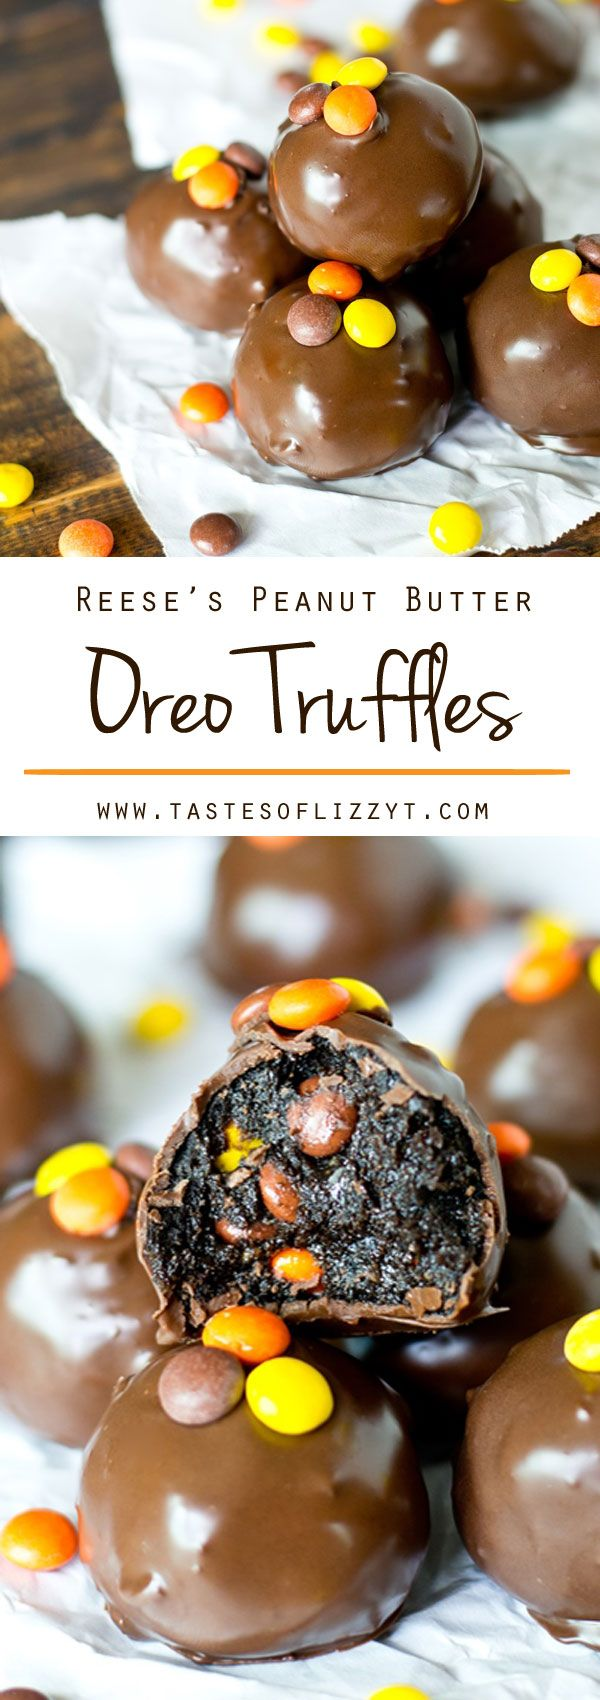 Reese's Peanut Butter Oreo Truffles. Oreos, cream cheese, Reese's Peanut Butter Cups and Reese's Pieces together in a bite-size, chocolate dipped treat.